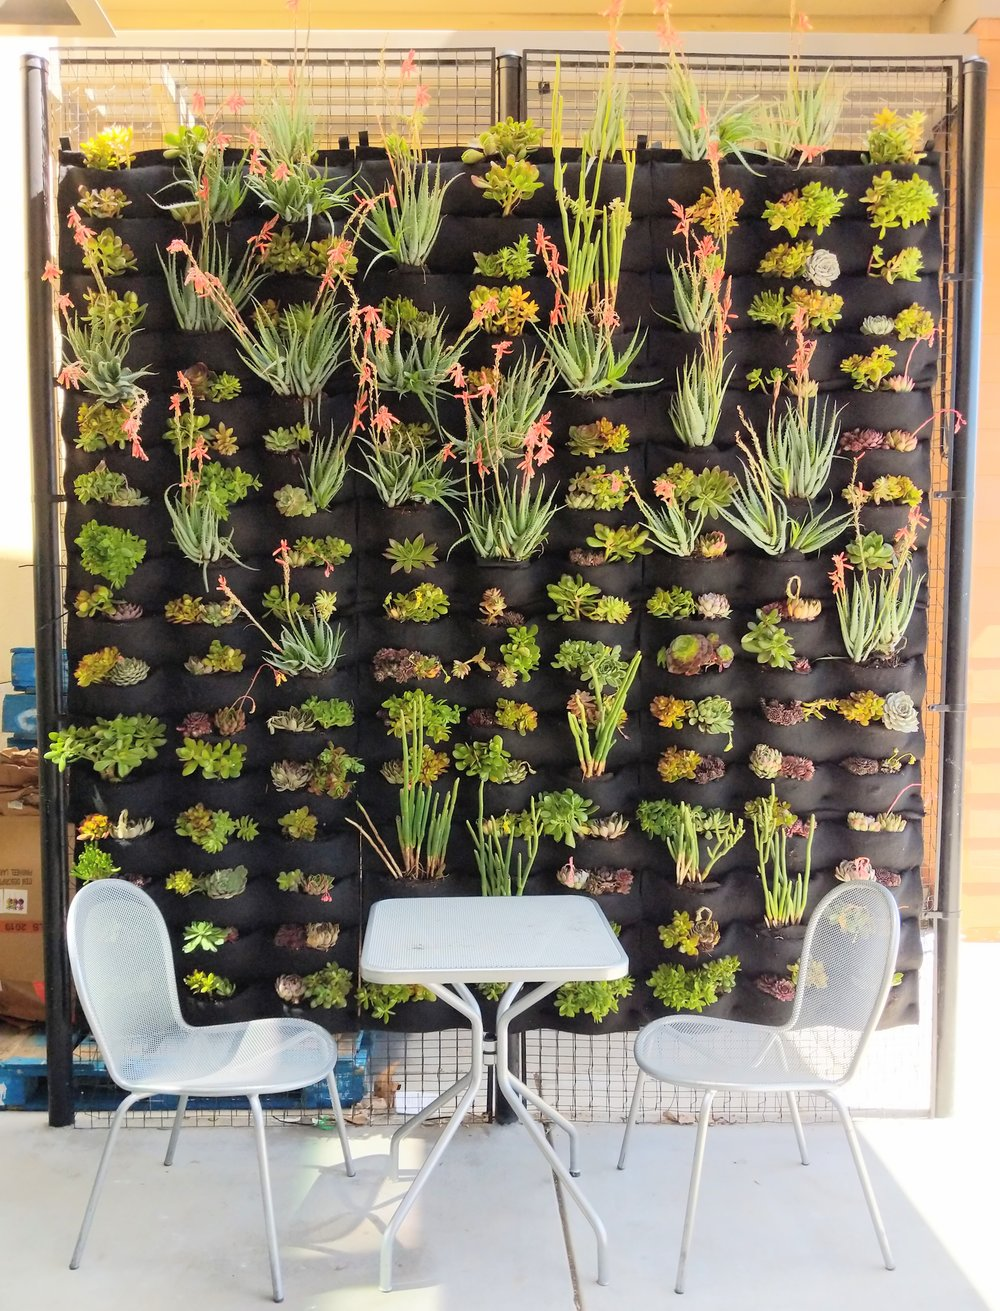 Florafelt Pocket Panel living wall filled with Succulents for Jamba Juice in Martinez, California.